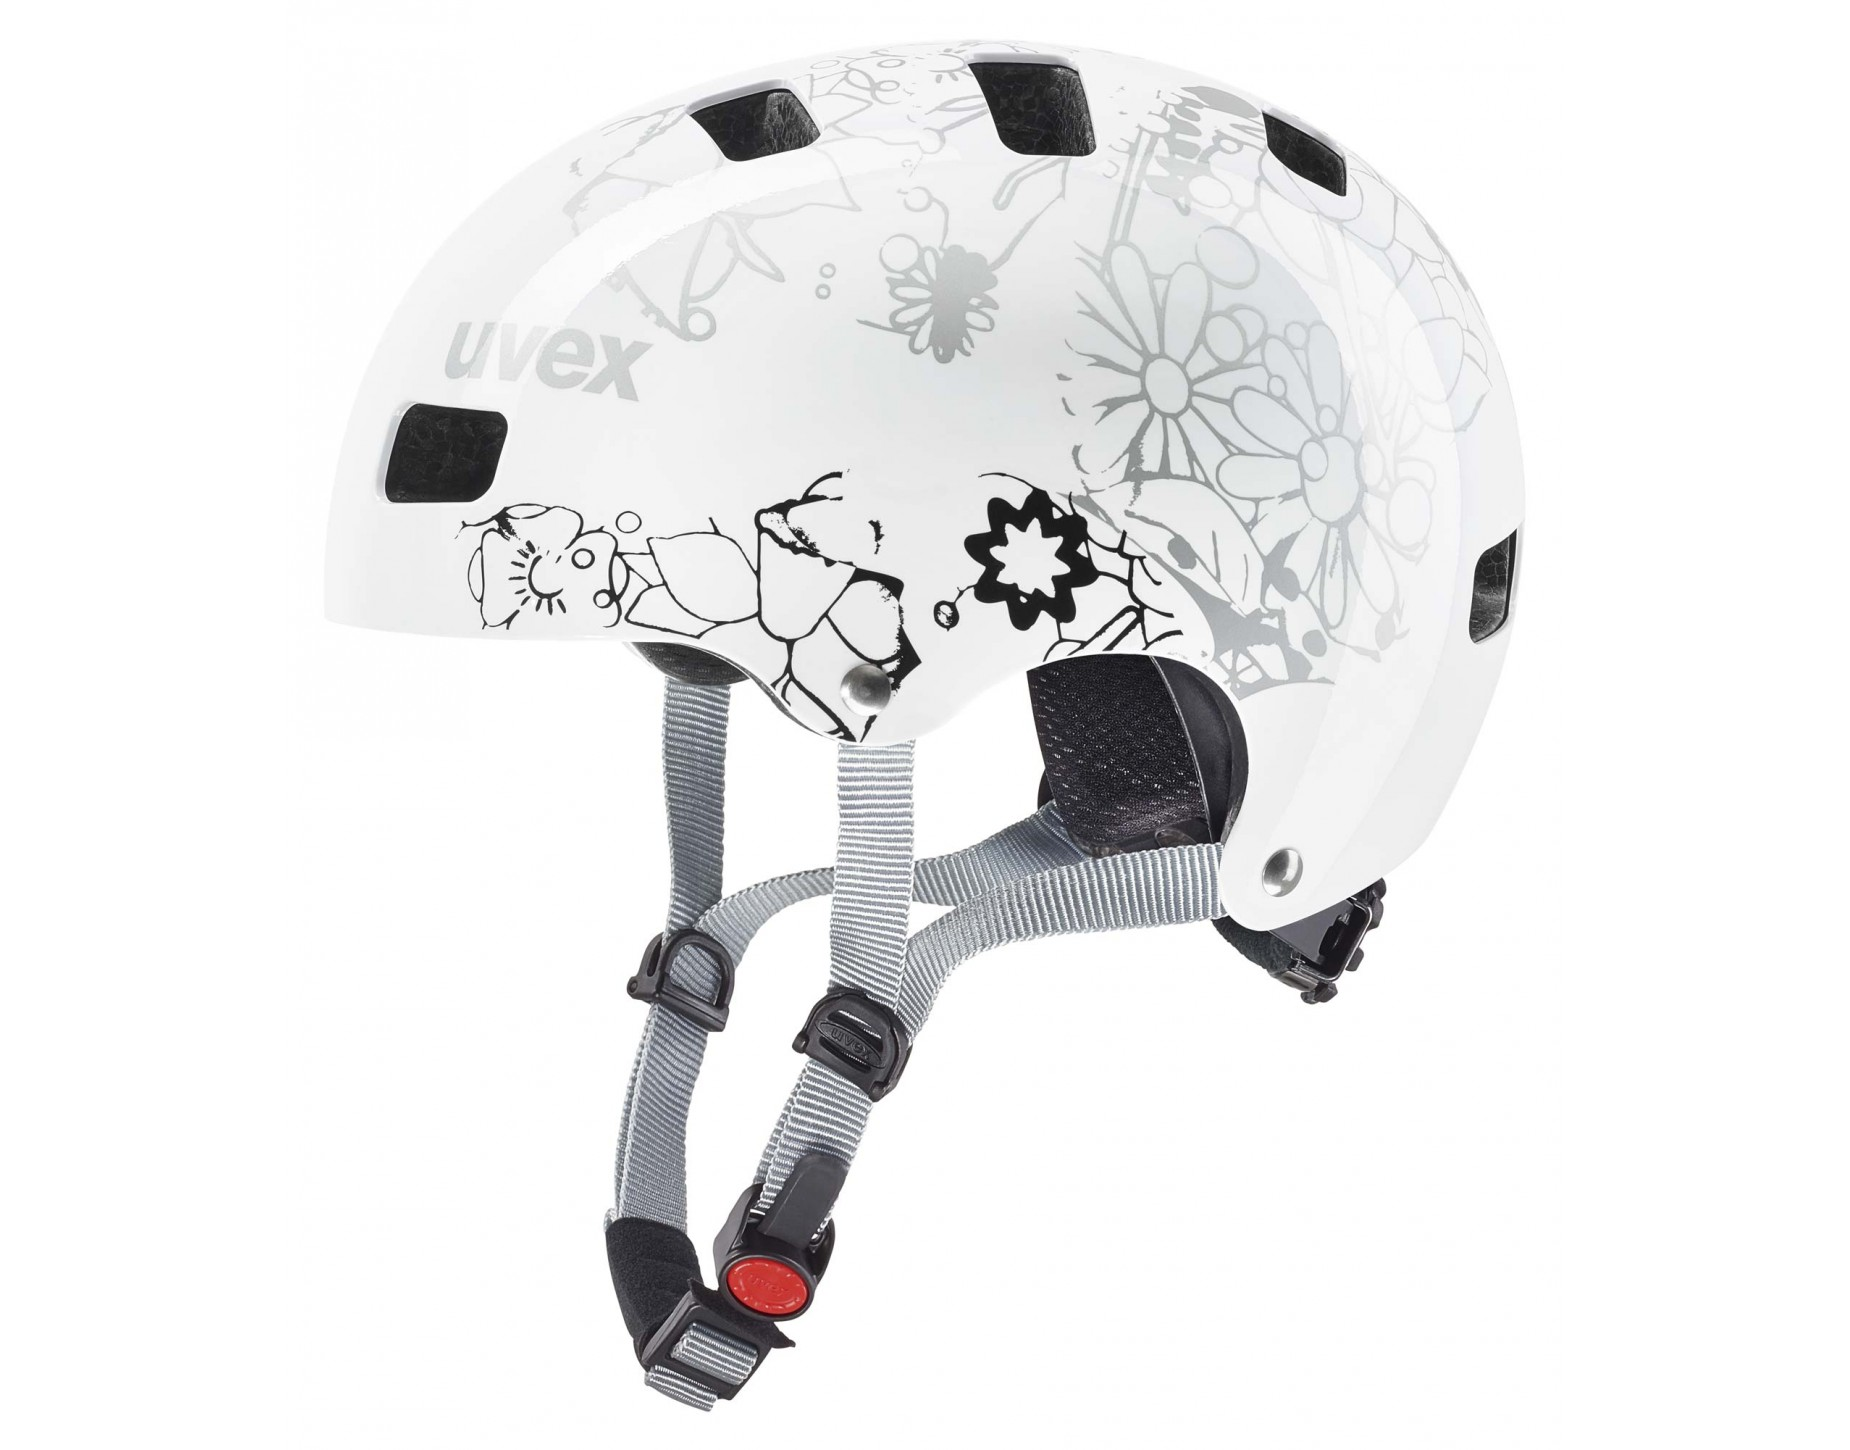 uvex KID 3 Kinder Helm white flower